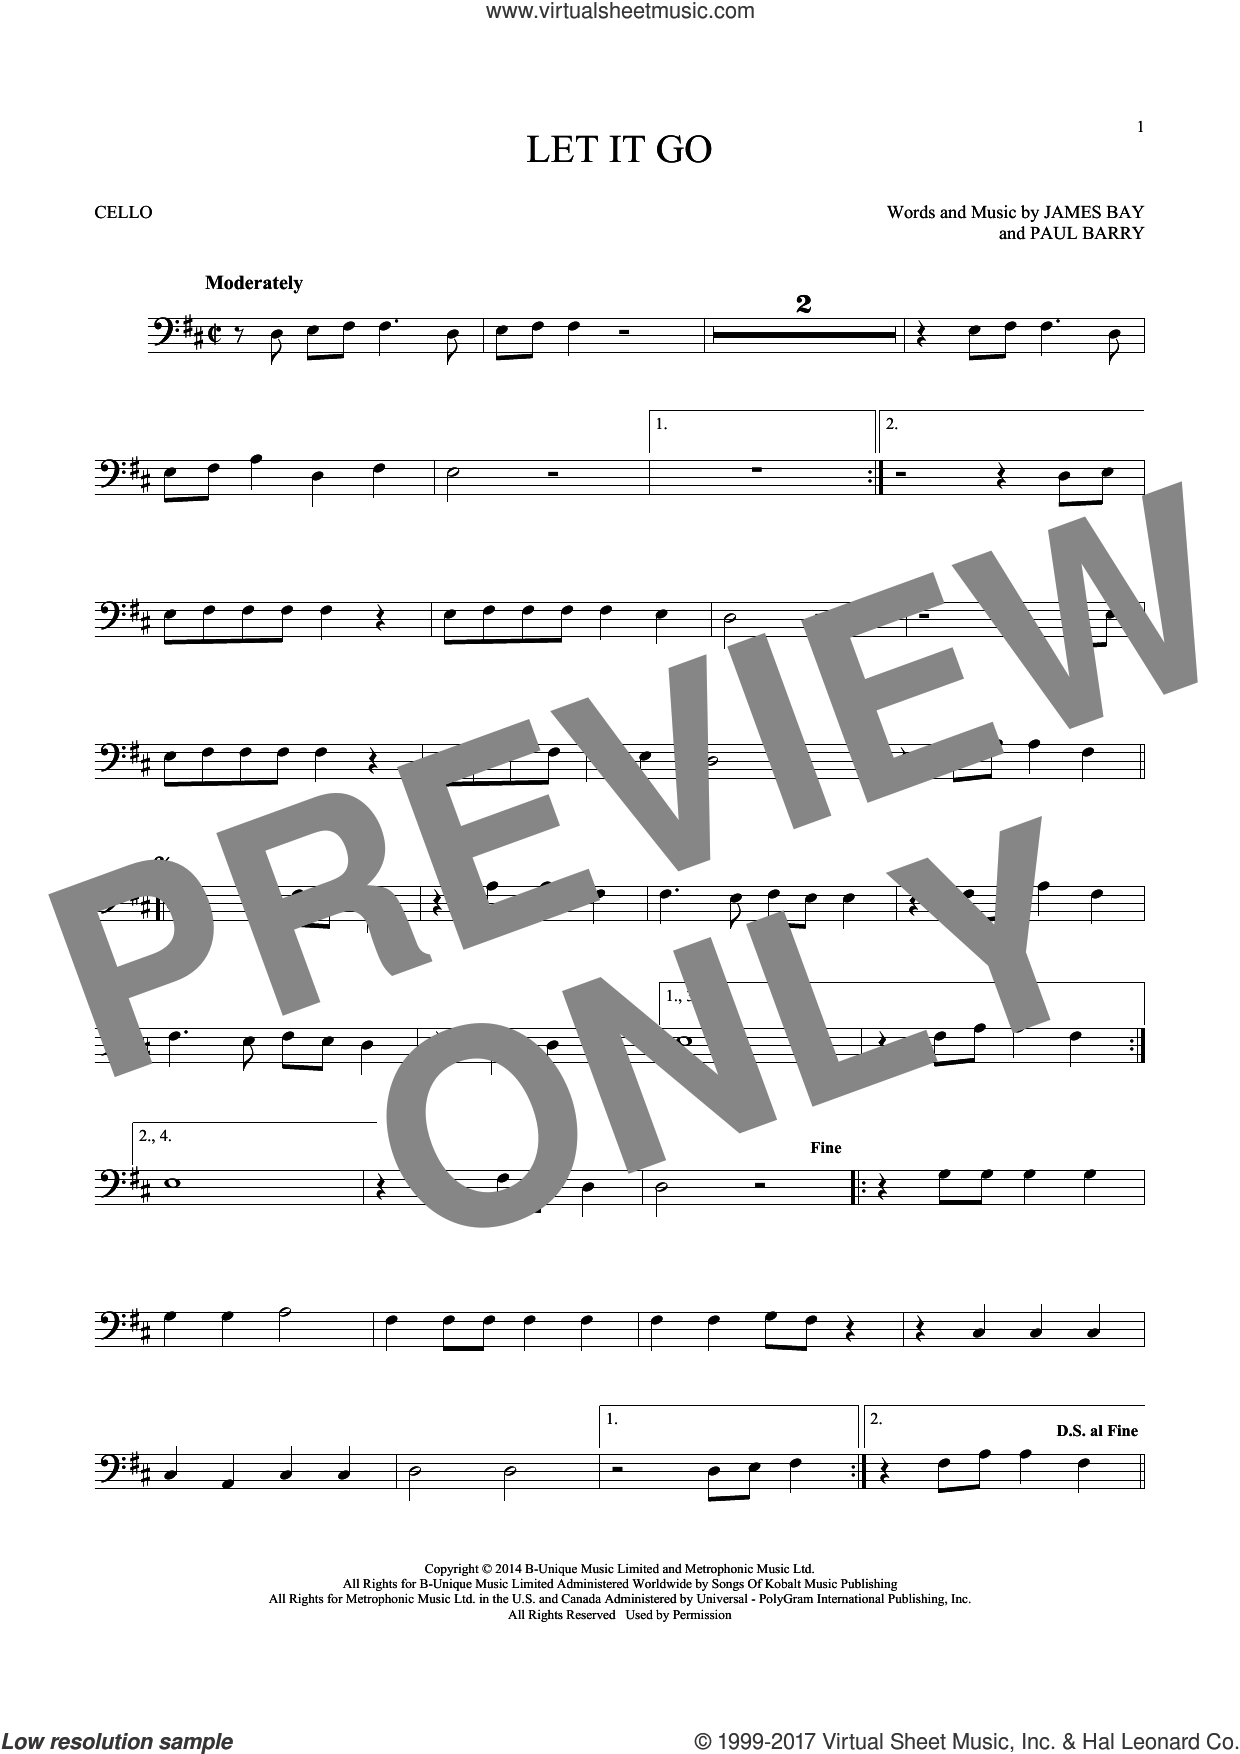 Let It Go sheet music for cello solo by James Bay and Paul Barry, intermediate